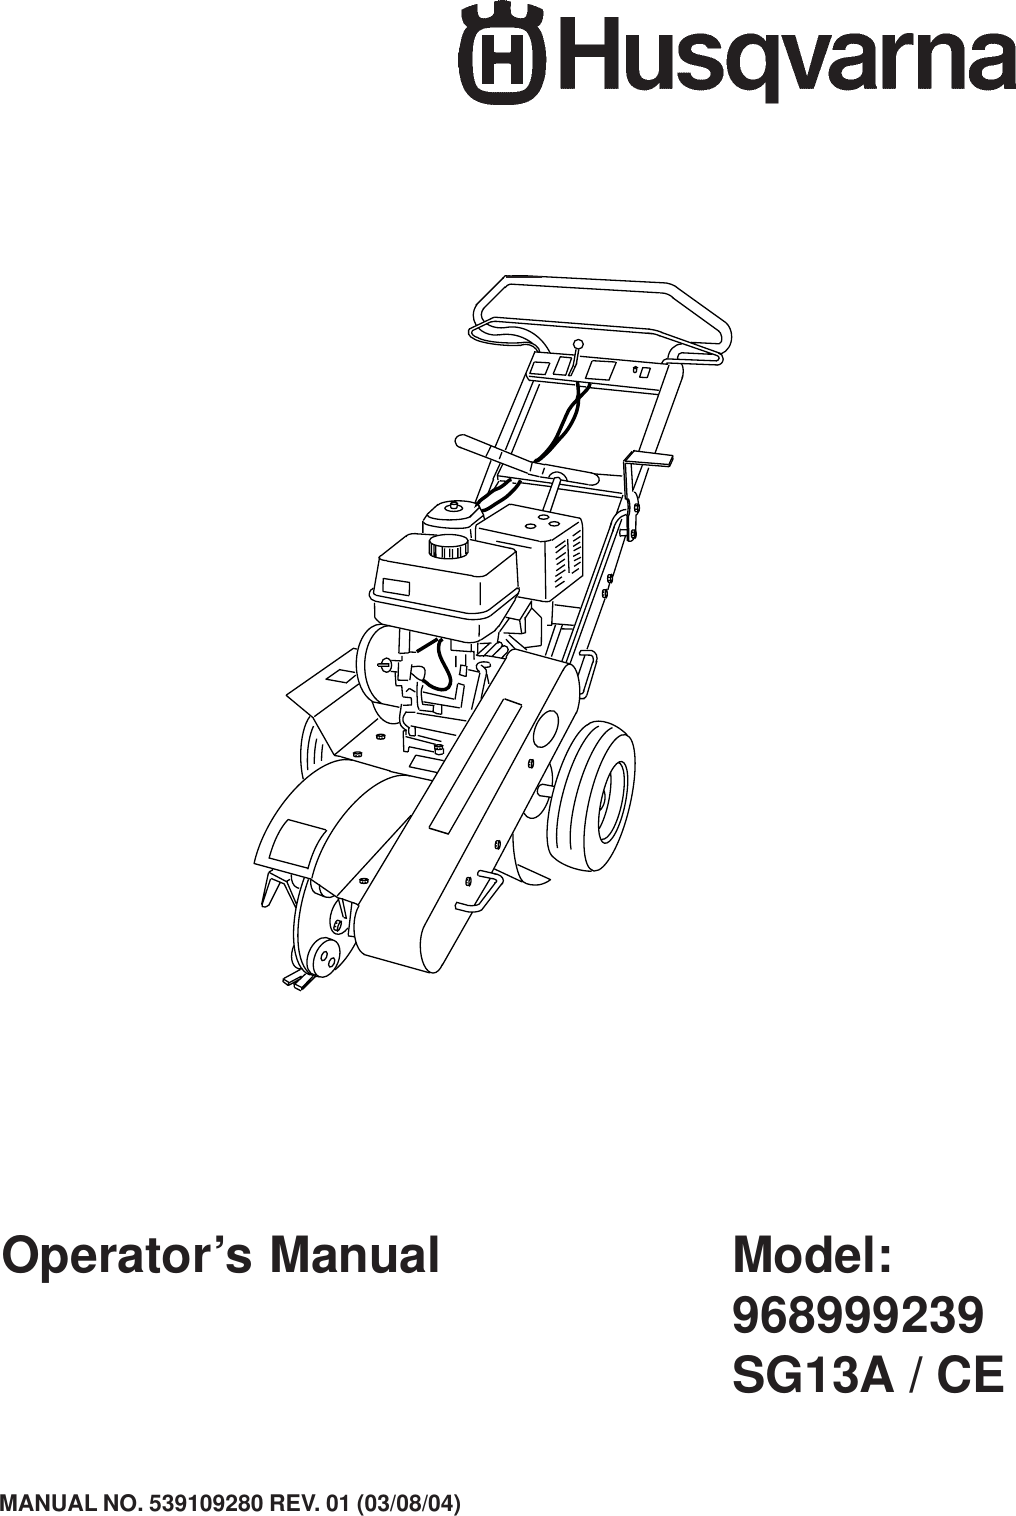 Husqvarna 968999239 Users Manual OM, SG 13 A/ CE, 2004 03